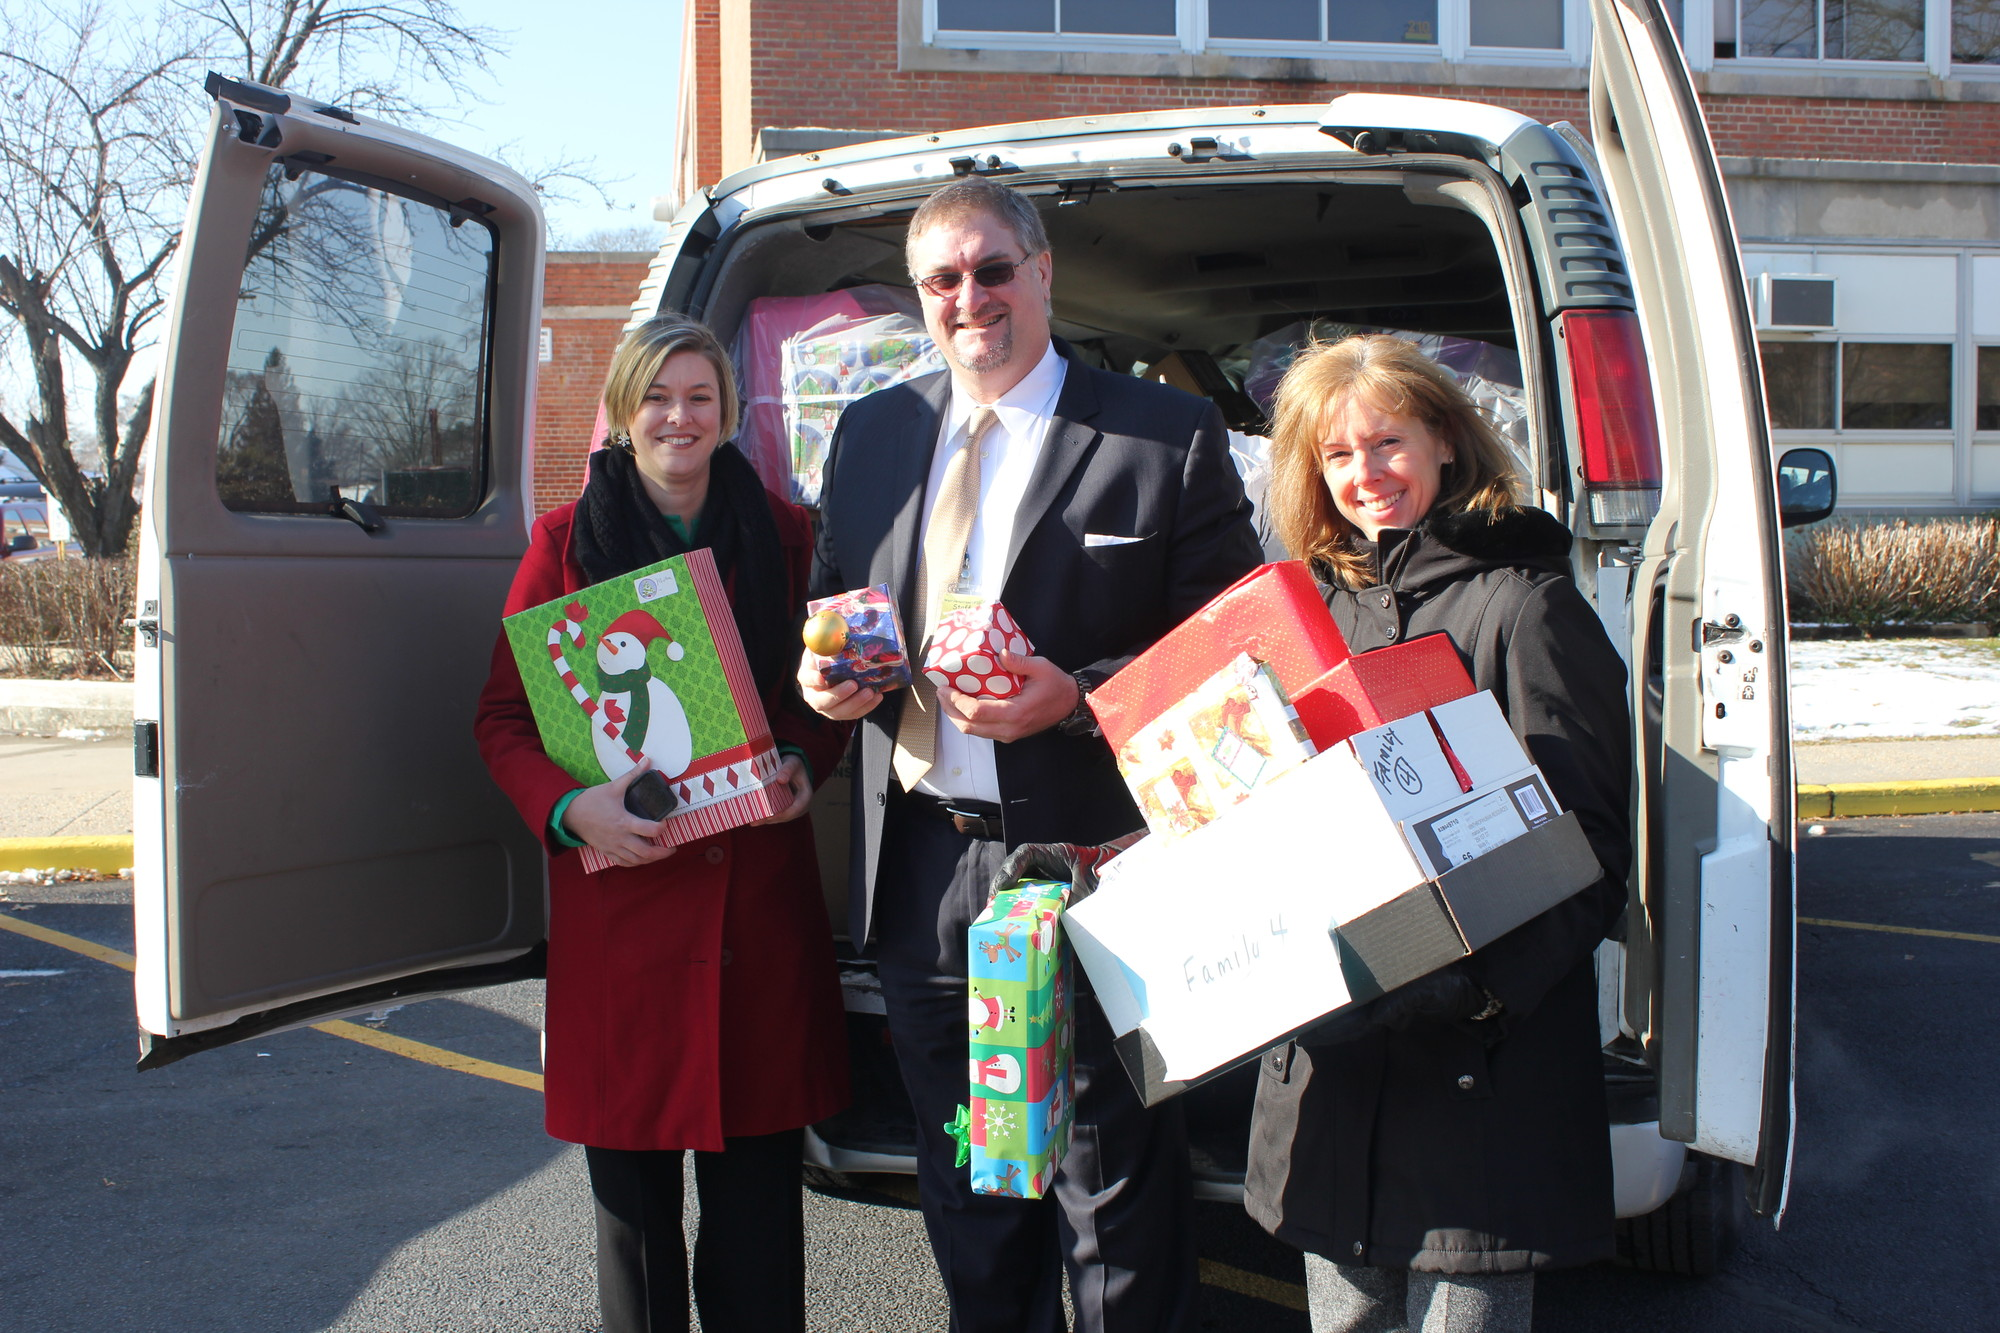 Just one of the vanloads of gifts recently presented to West Hempstead High School as a result of Winthrop-University Hospital�s 2013 Adopt a Family Campaign. Matti Hasselmann, MPA, CPC, Administrative Director of the Departments of Thoracic & Cardiovascular Surgery and Orthopaedics at Winthrop, Dan Rehman, Principal at West Hempstead High Schooland Carol Giordano, Employees Activities Coordinator at Winthrop.